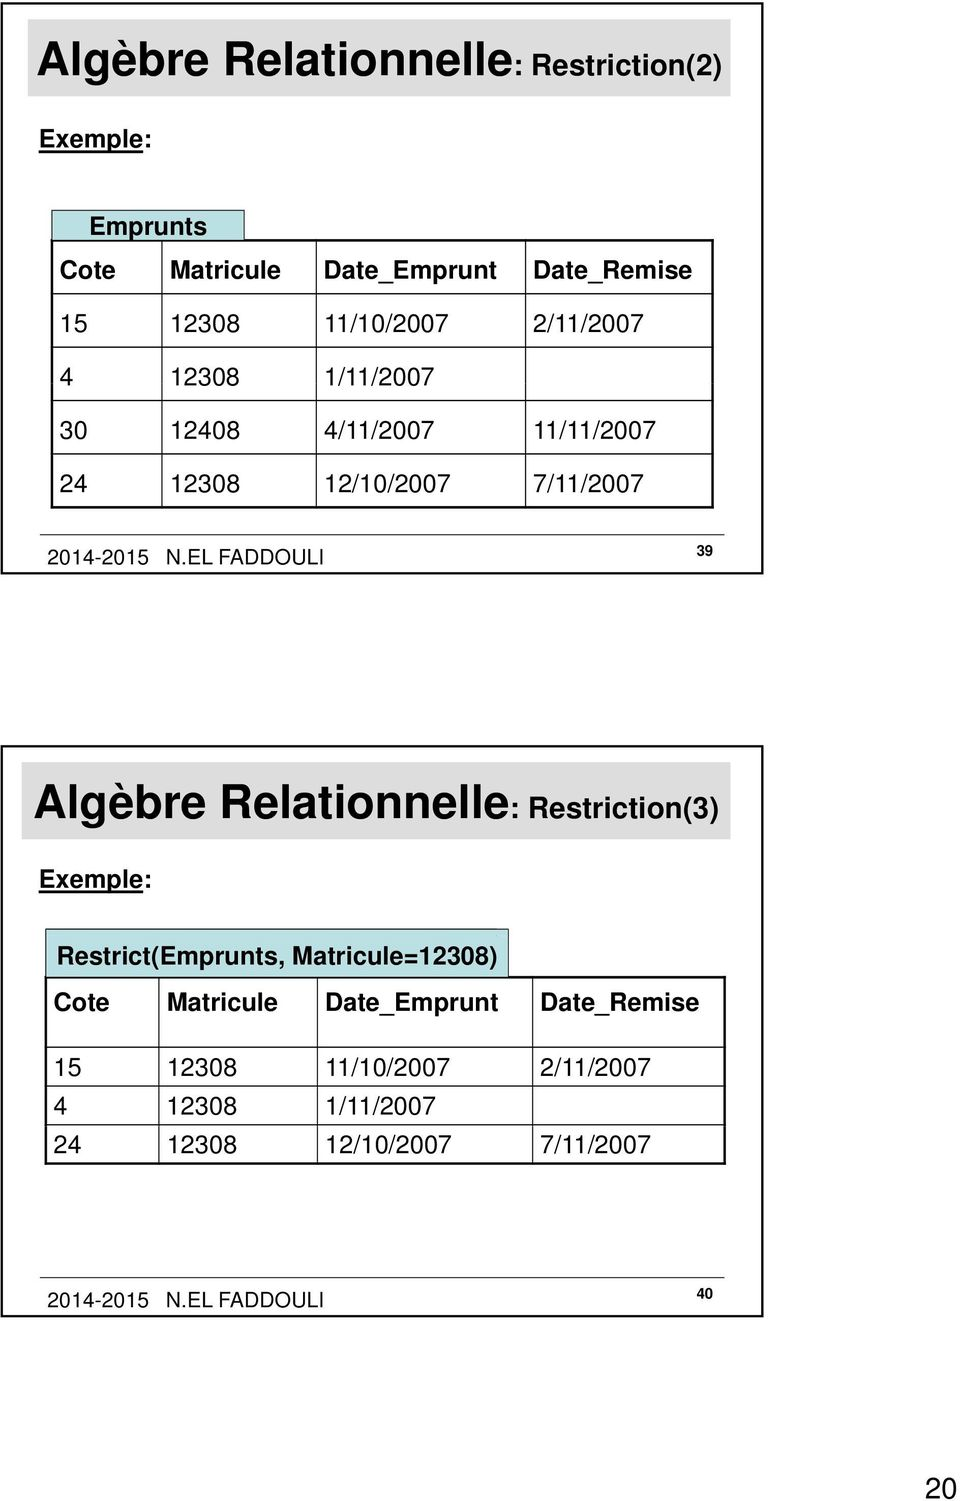 Algèbre Relationnelle: Restriction(3) Restrict(Emprunts, Matricule = 12308 (Emprunts) Matricule=12308)